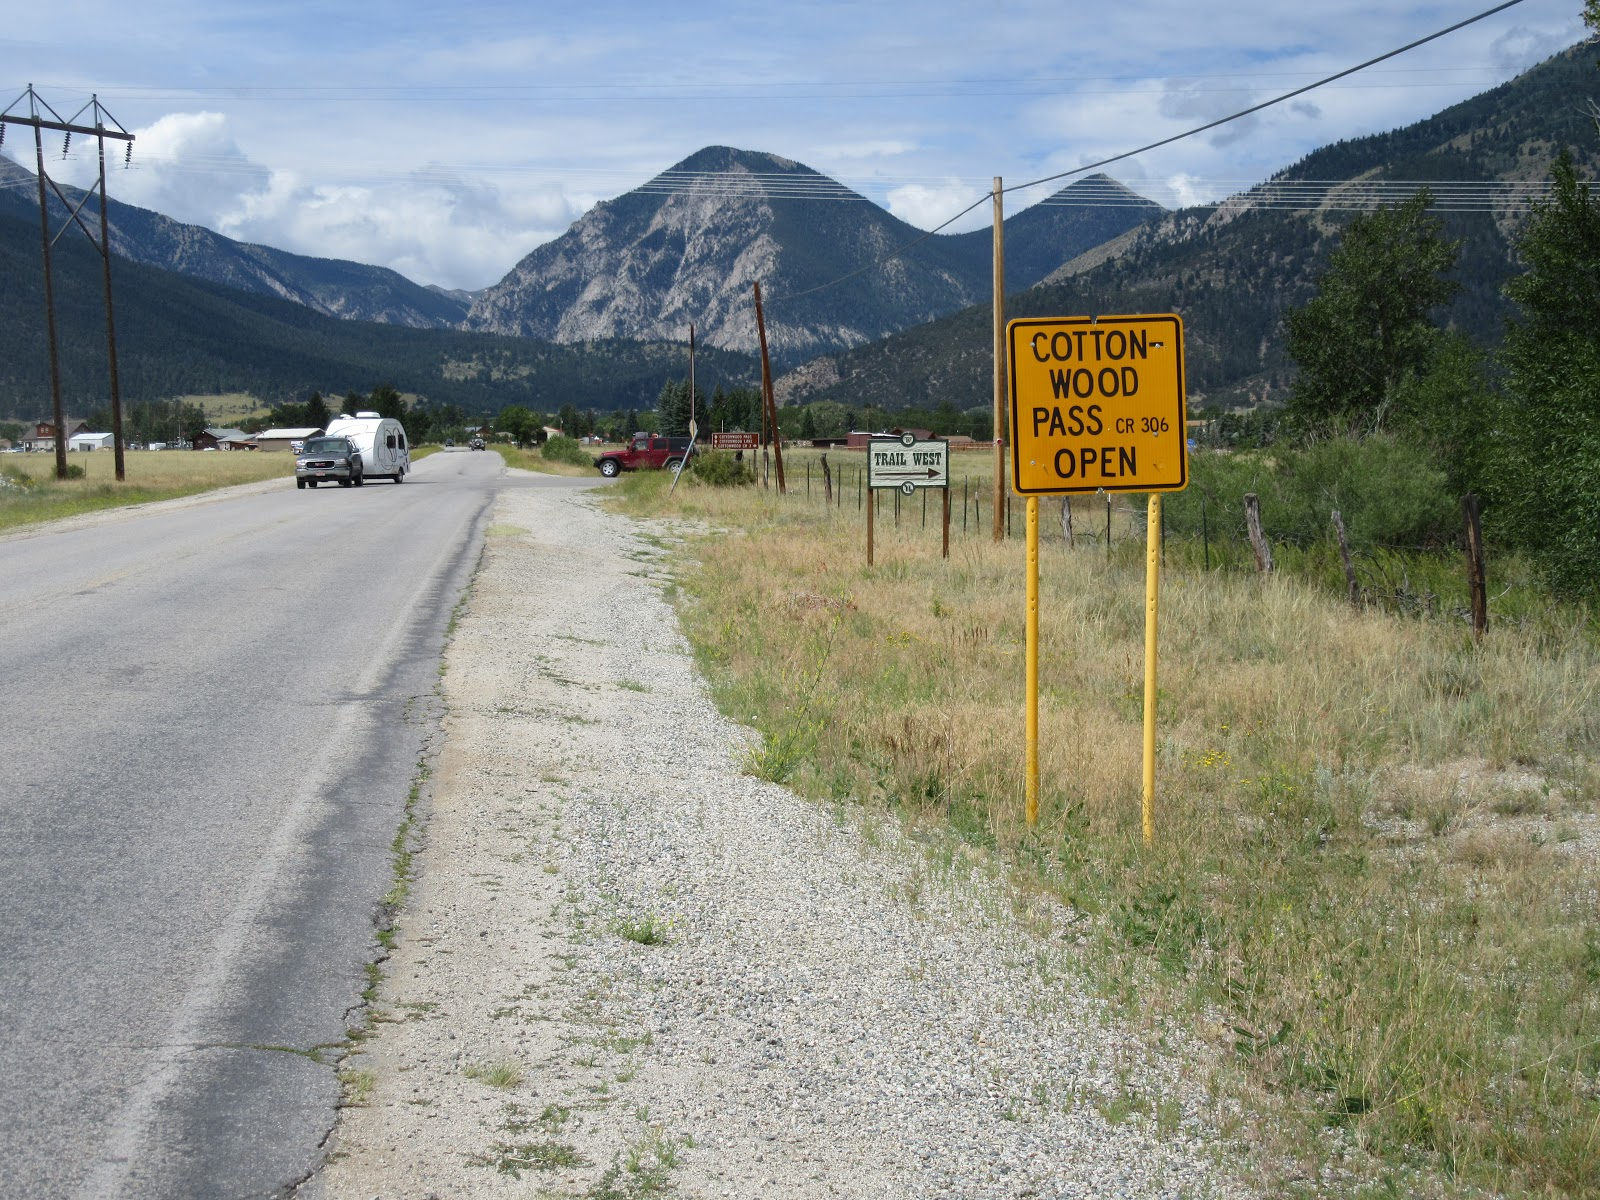 Cycling Cottonwood Pass  - roadway sign, highway and mountains